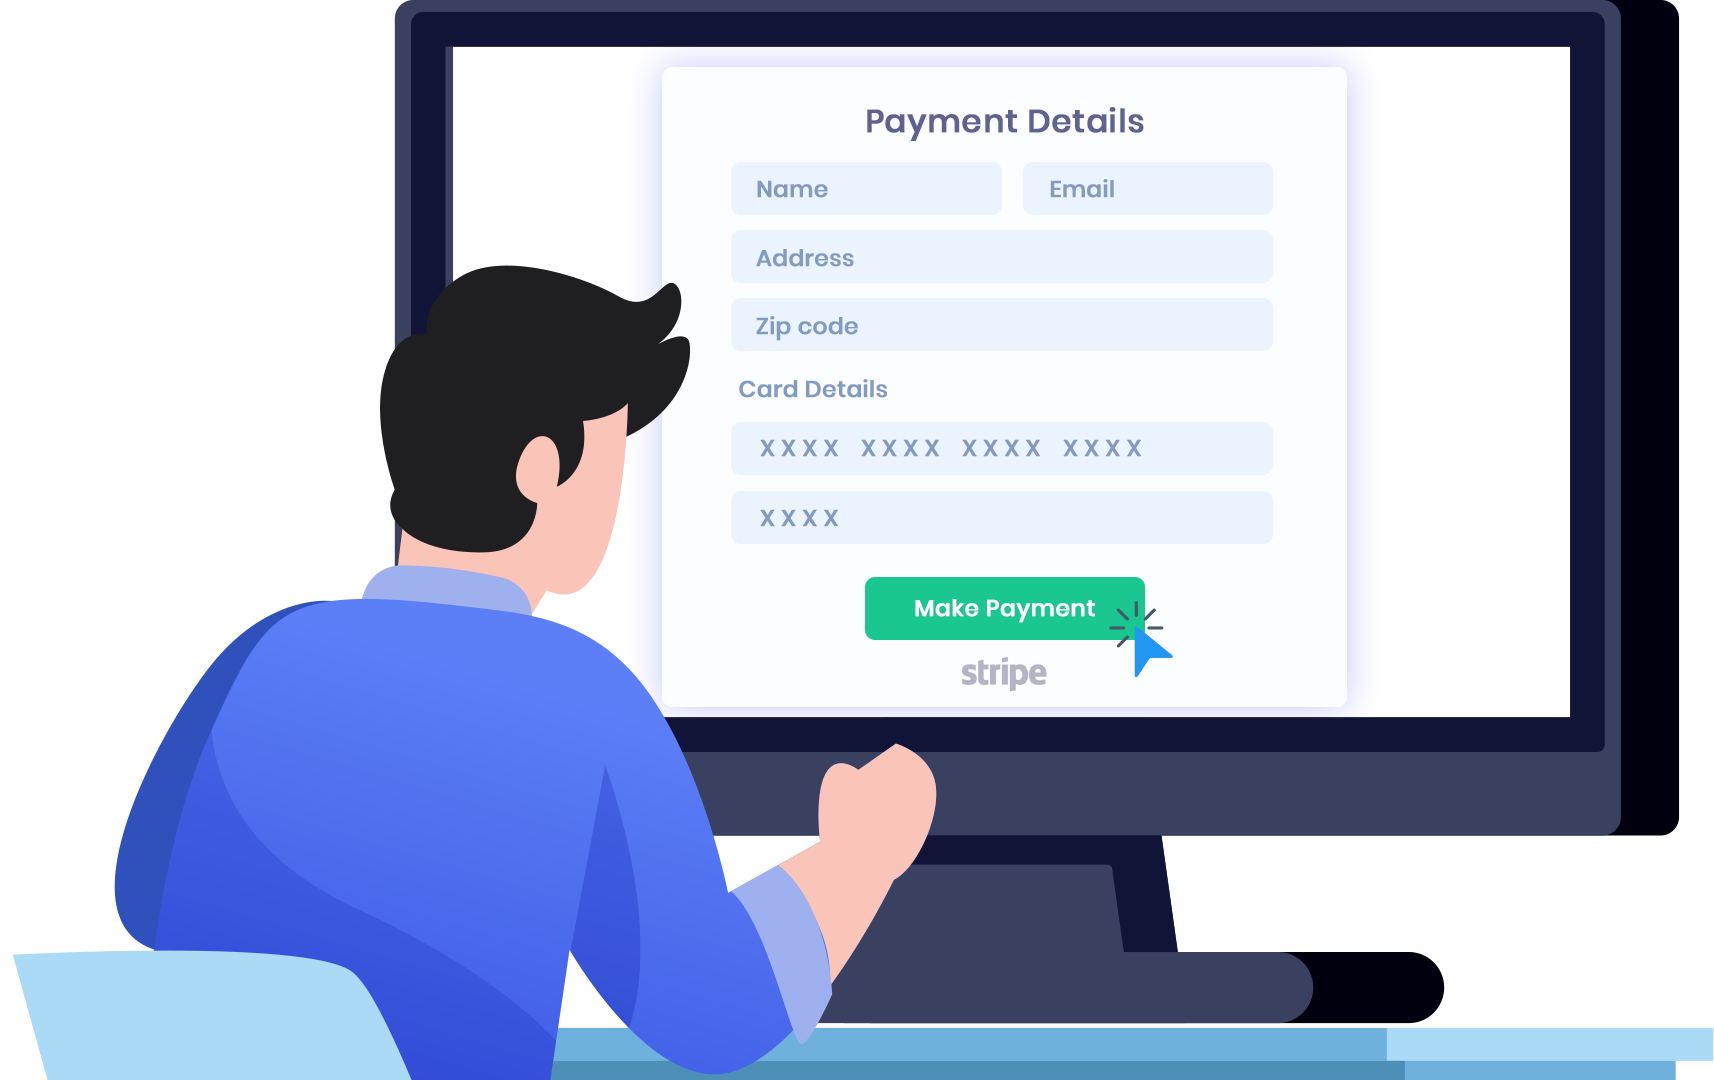 Payment details entered once during Checkout